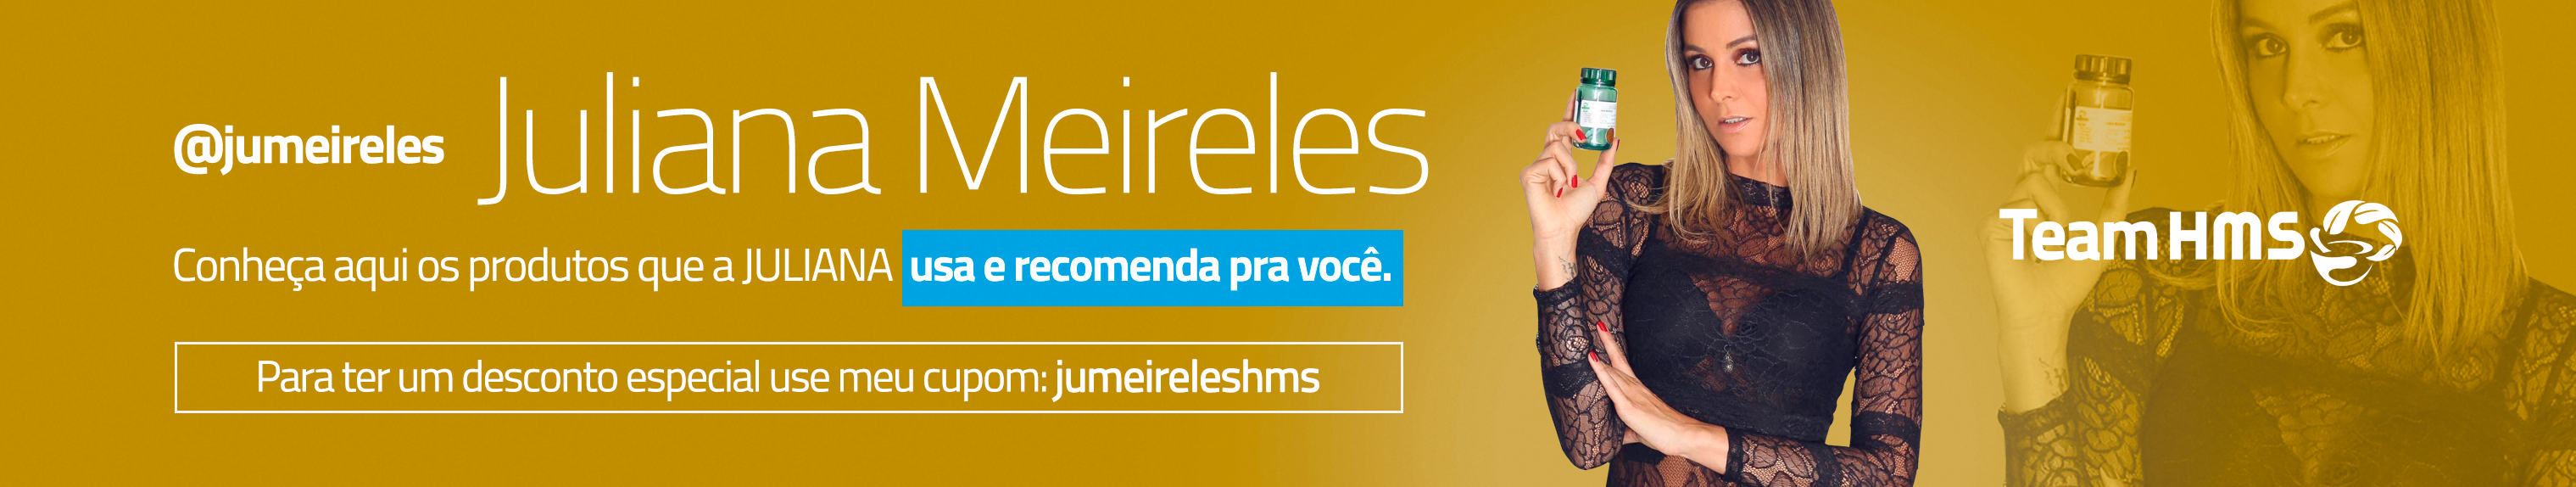 banner Juliana Meireles